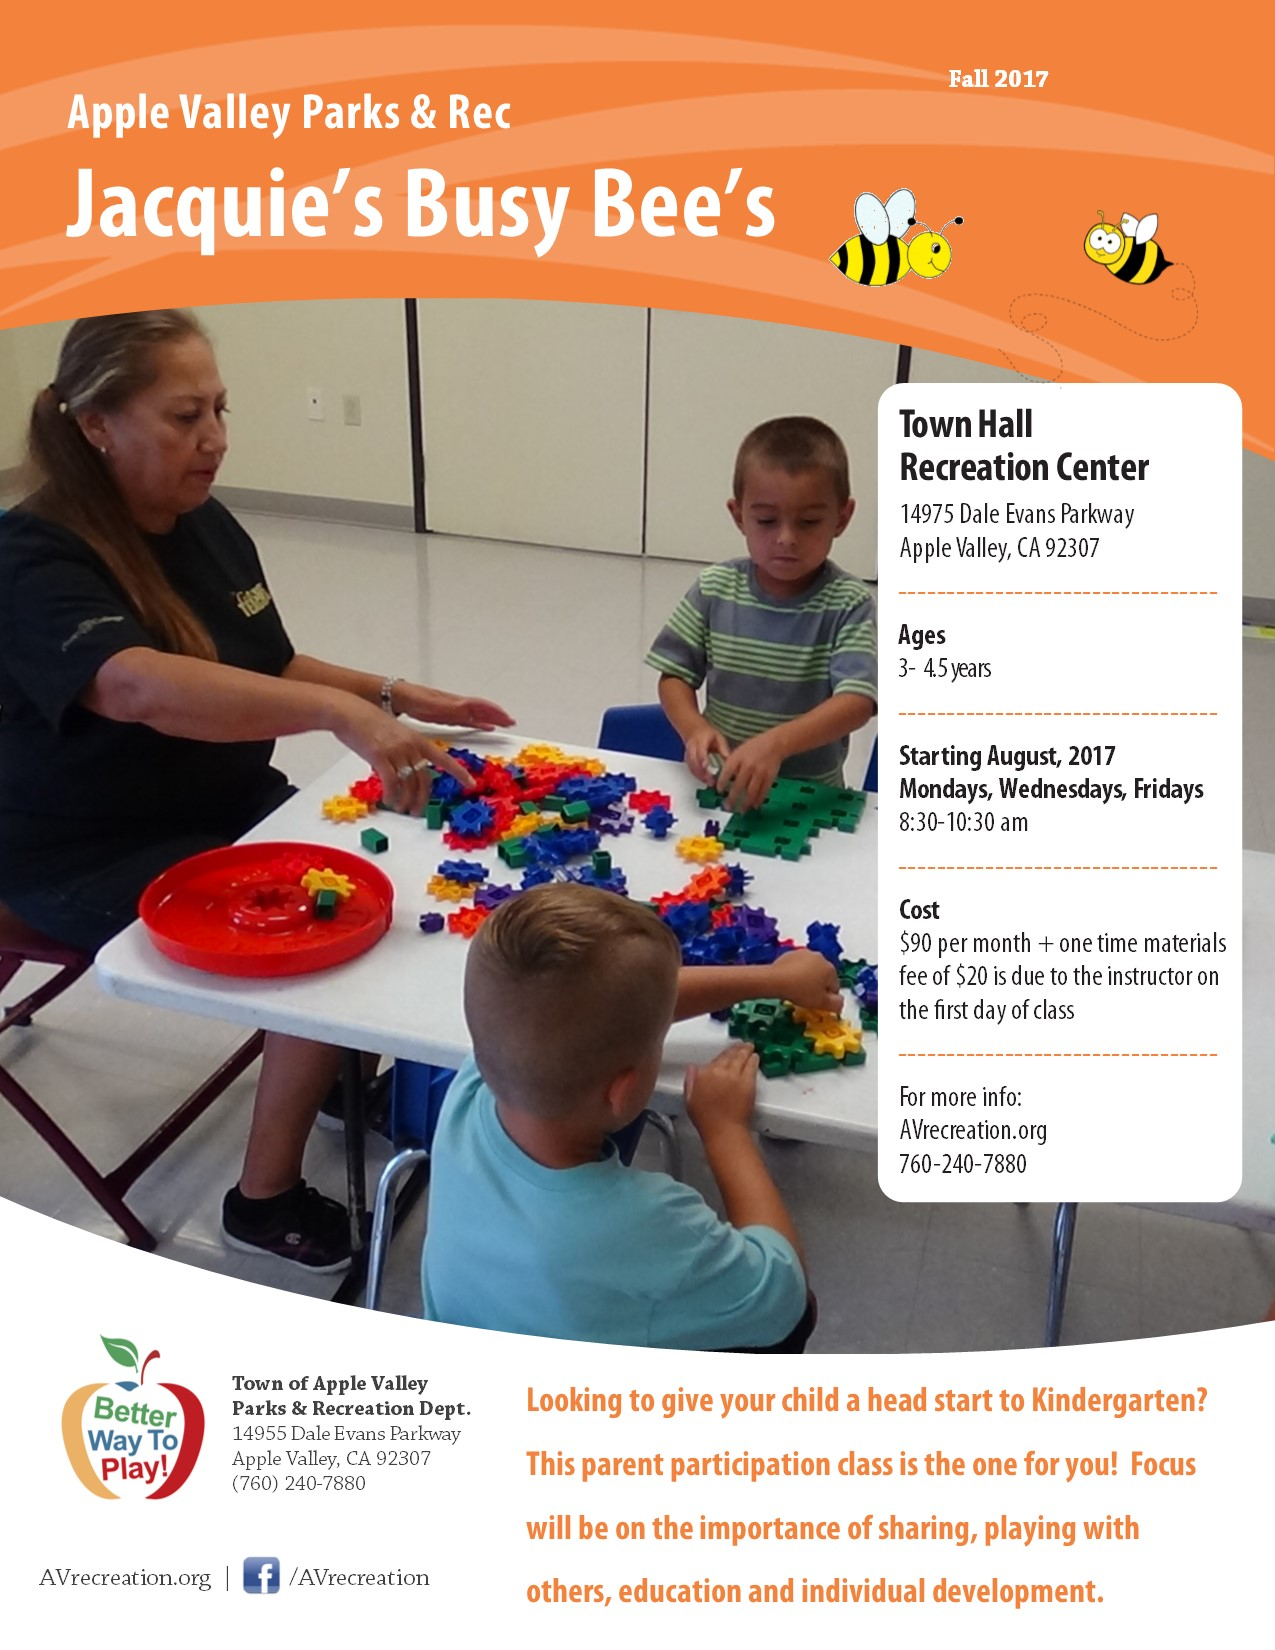 Jacquie's Busy Bee's